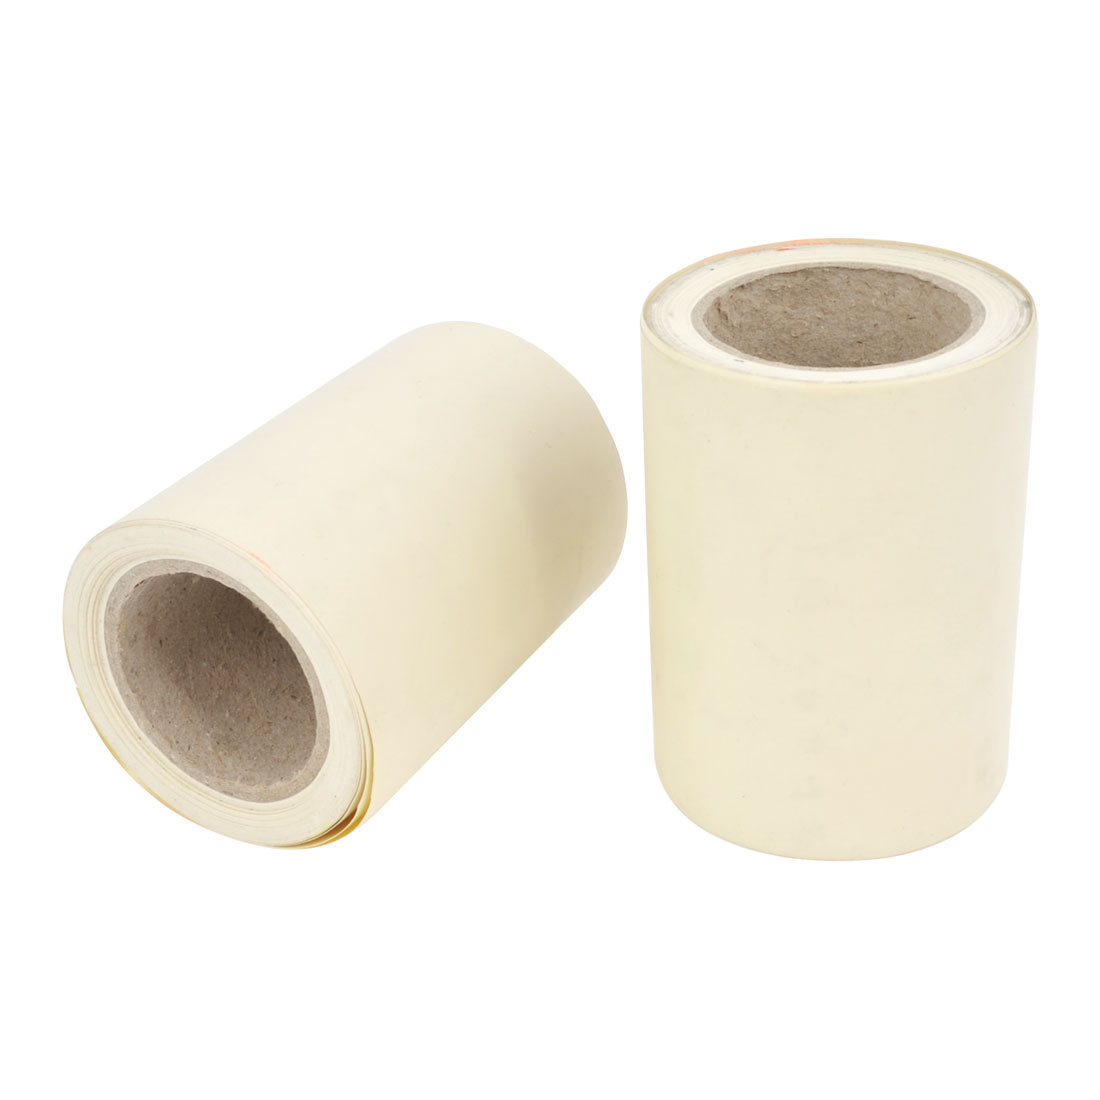 Air Conditioner PVC Pipe Hose Wrapping Tape Roller Ivory Color 8.5cmx10M 2 Pcs